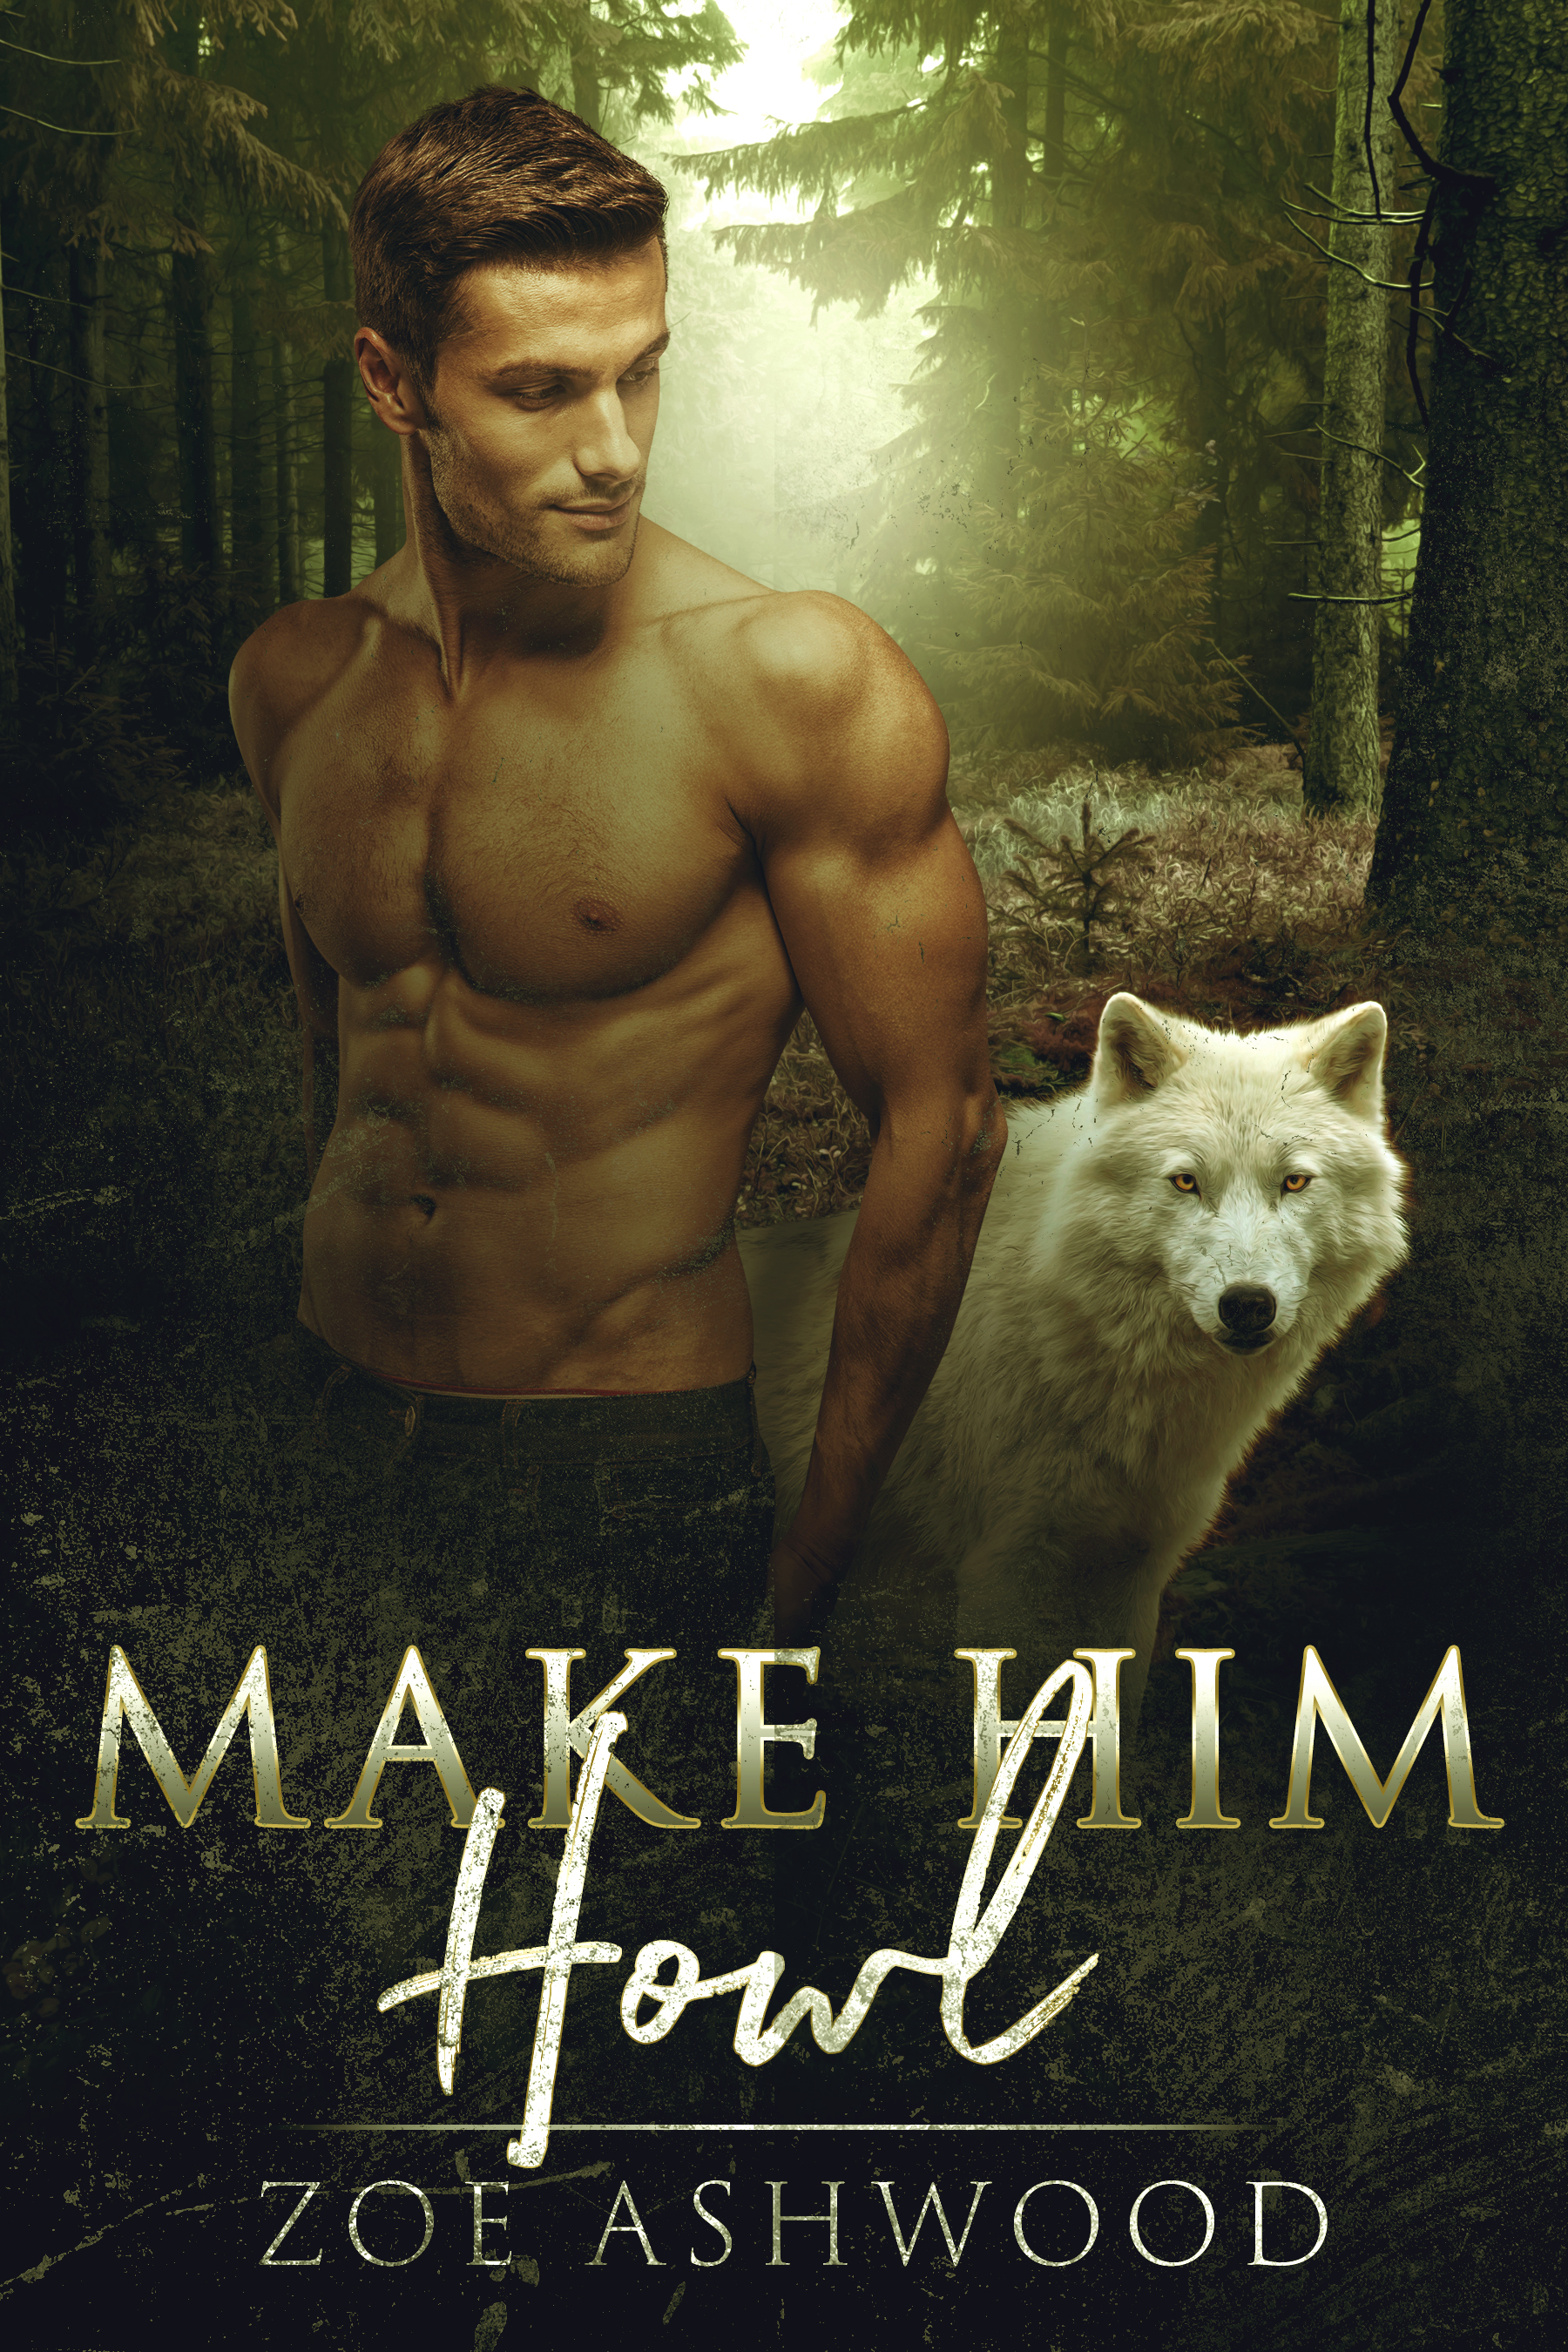 Make Him Howl by Zoe Ashwood